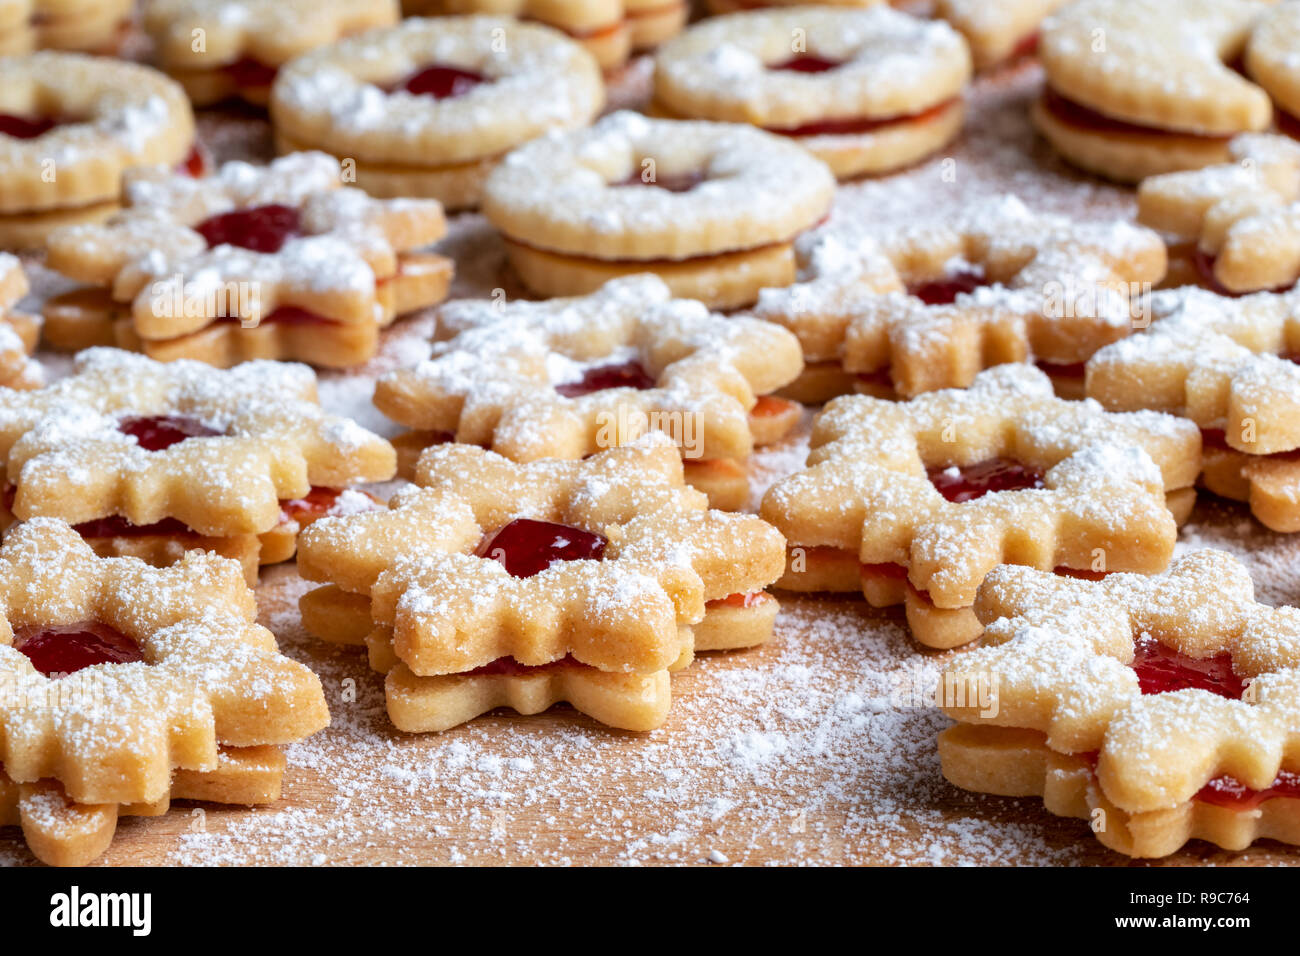 Traditional Linzer Christmas cookies filled with strawberry jam and dusted with sugar - Stock Image